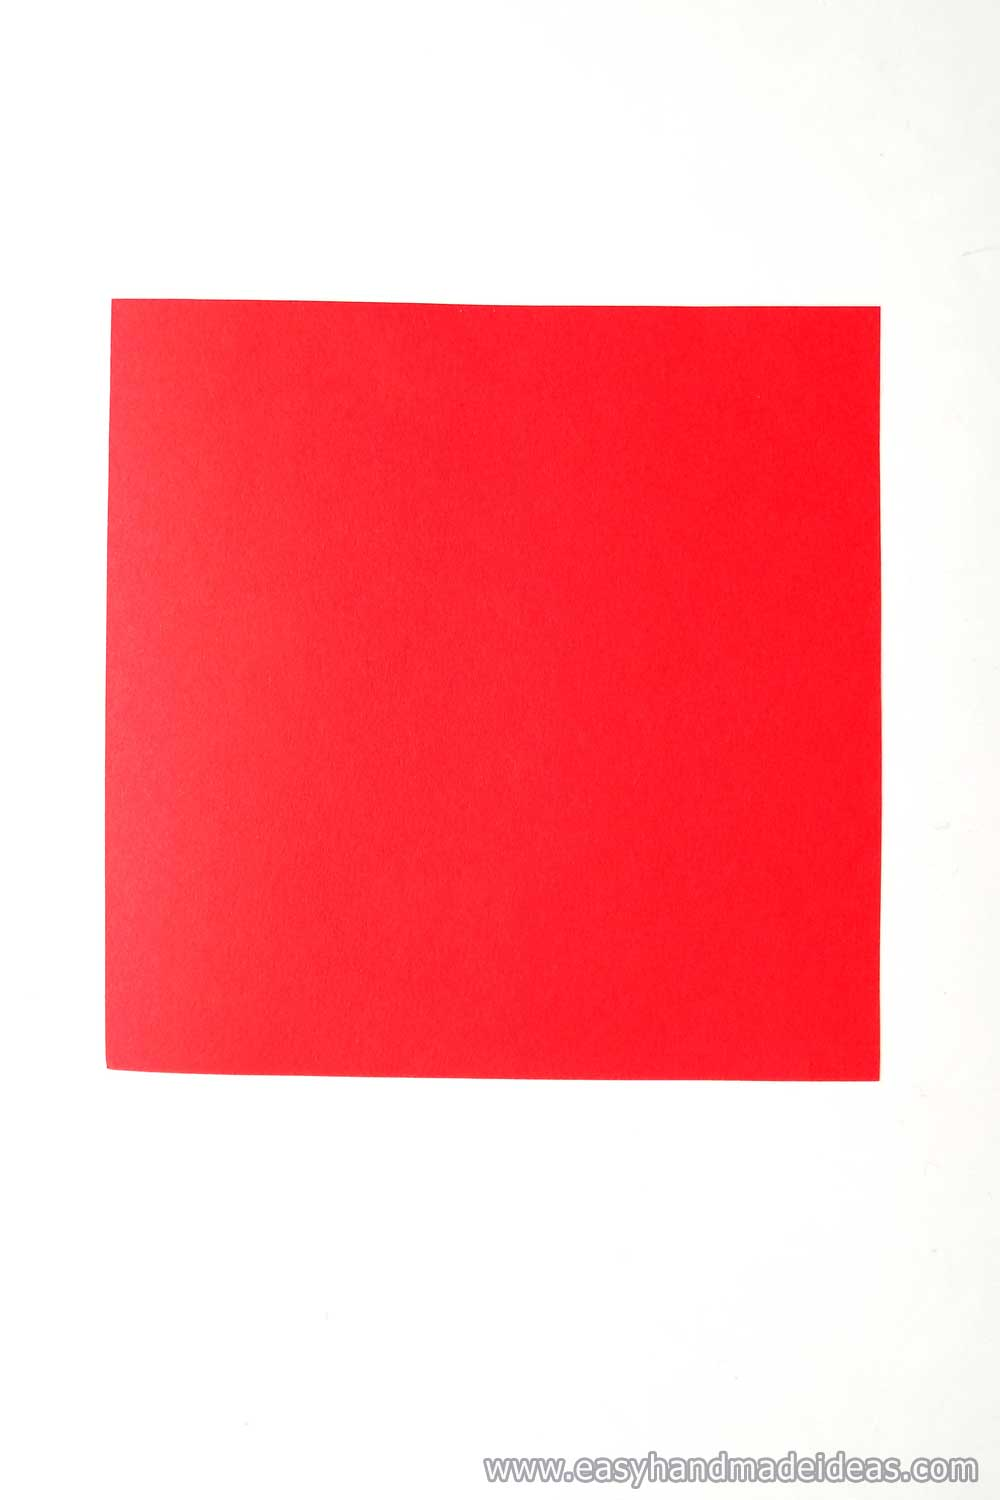 A Square of Red Paper